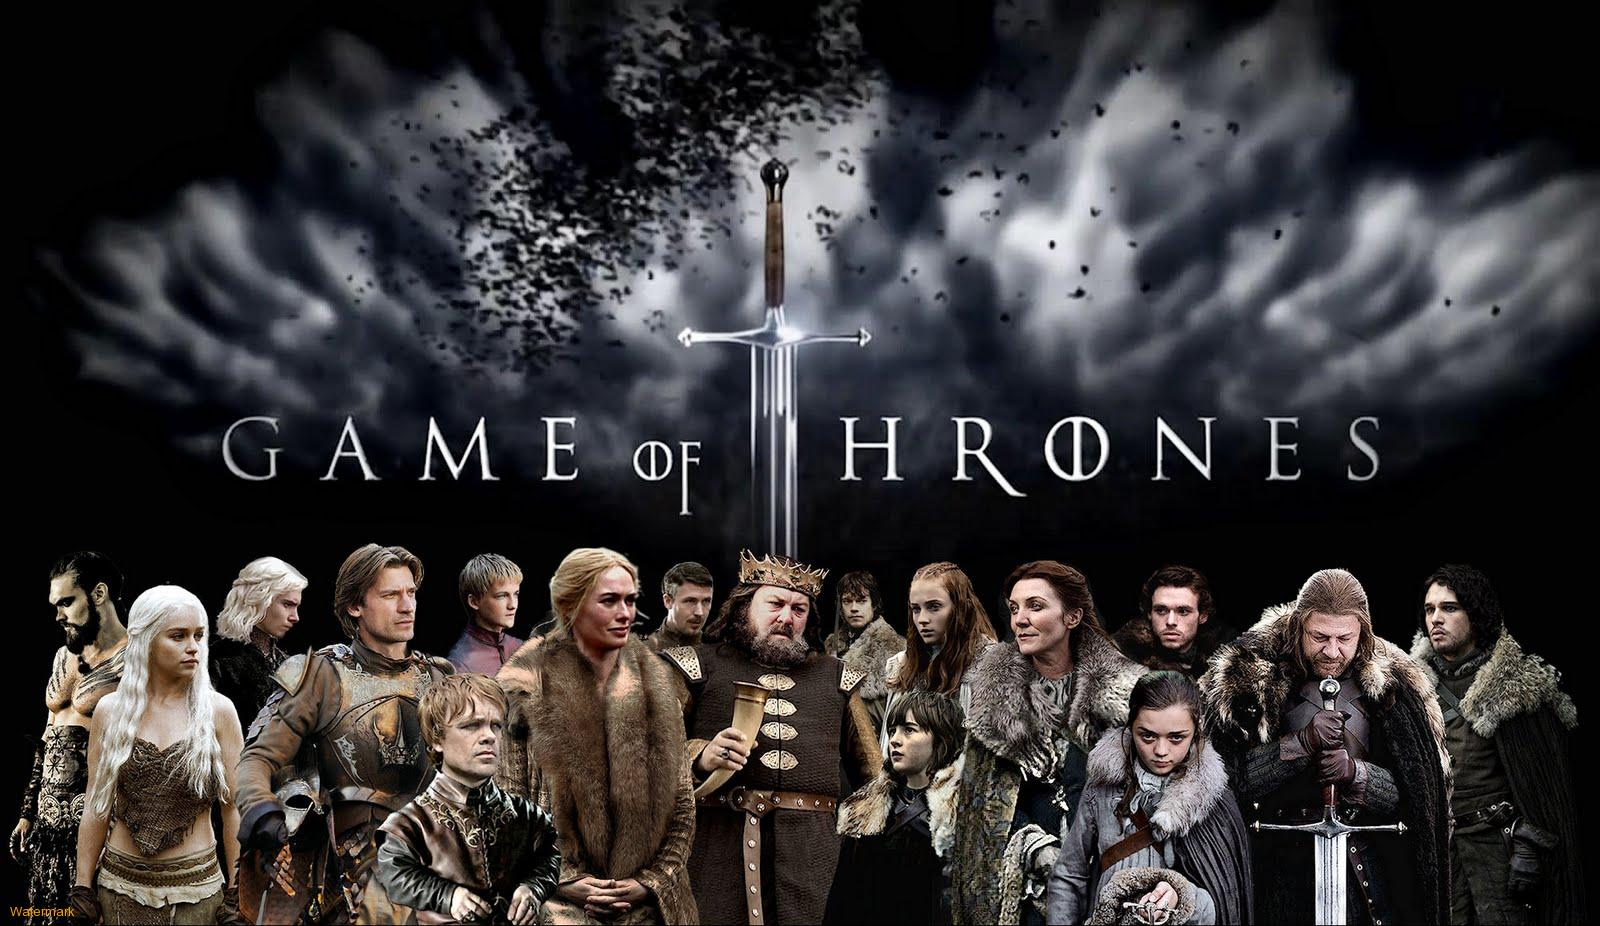 Google chrome themes game of thrones - Links